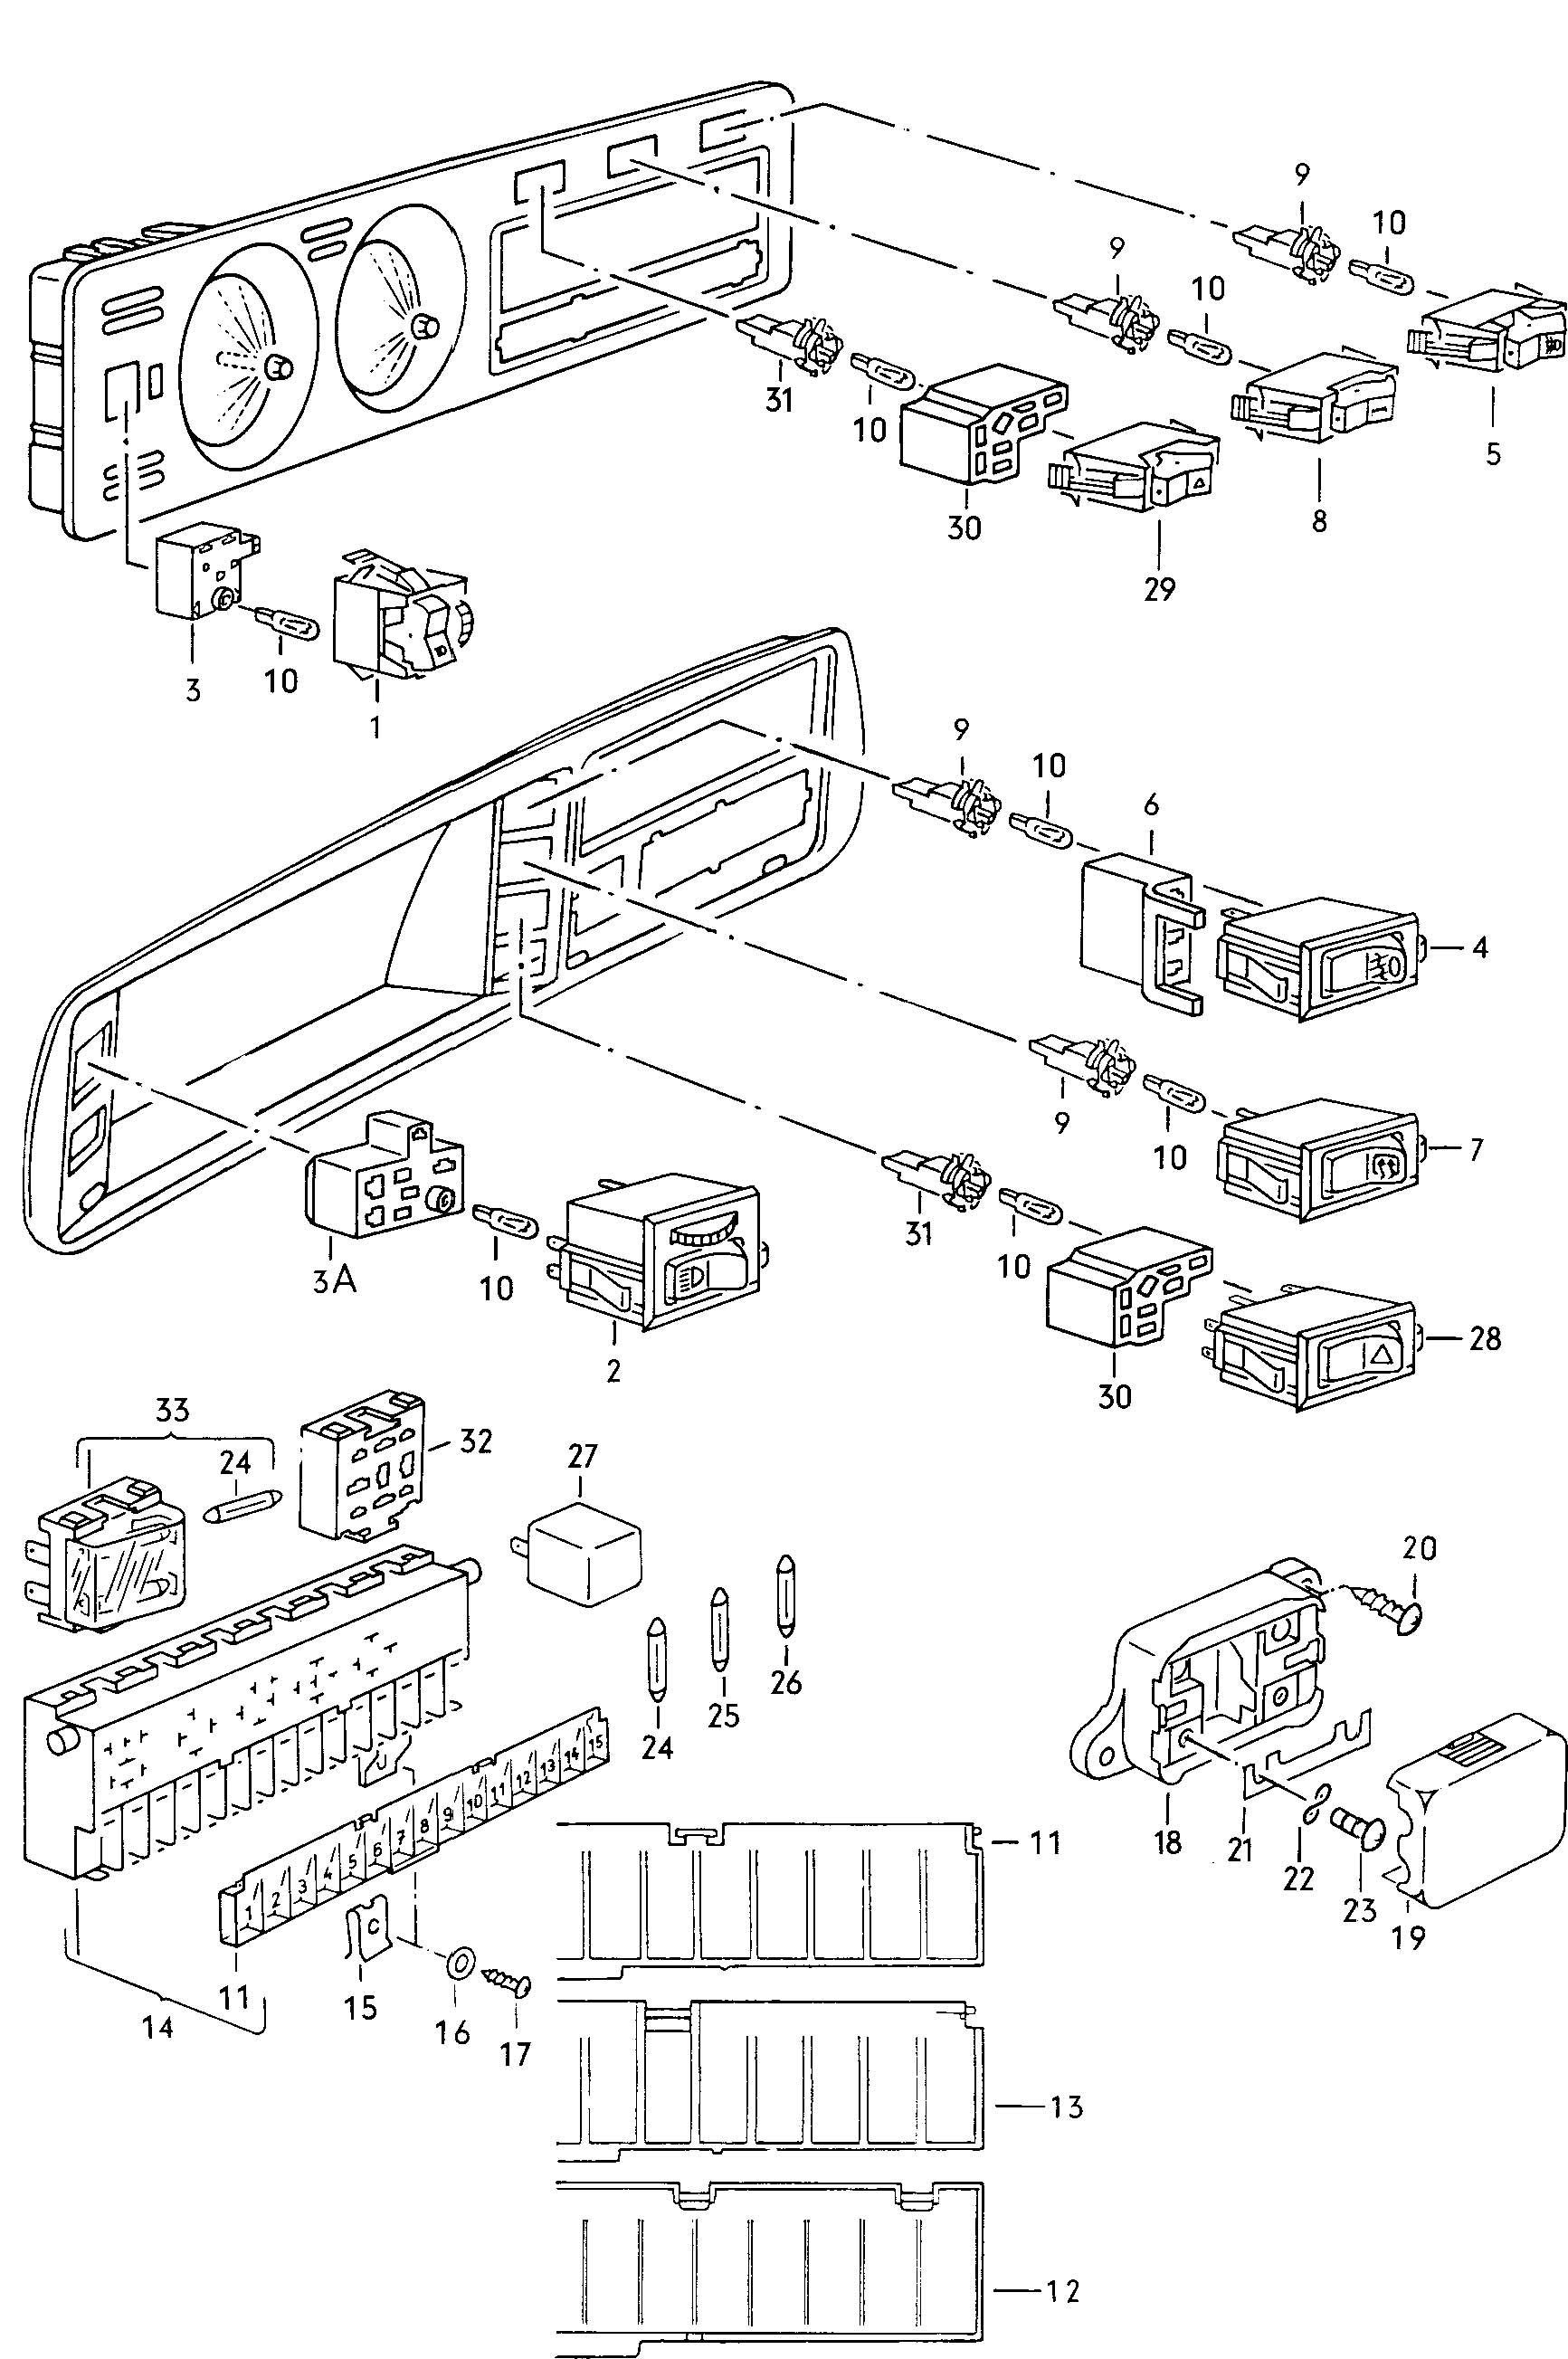 2010 Vw Jetta Sportwagen Tdi Fuse Box Diagram. Diagrams